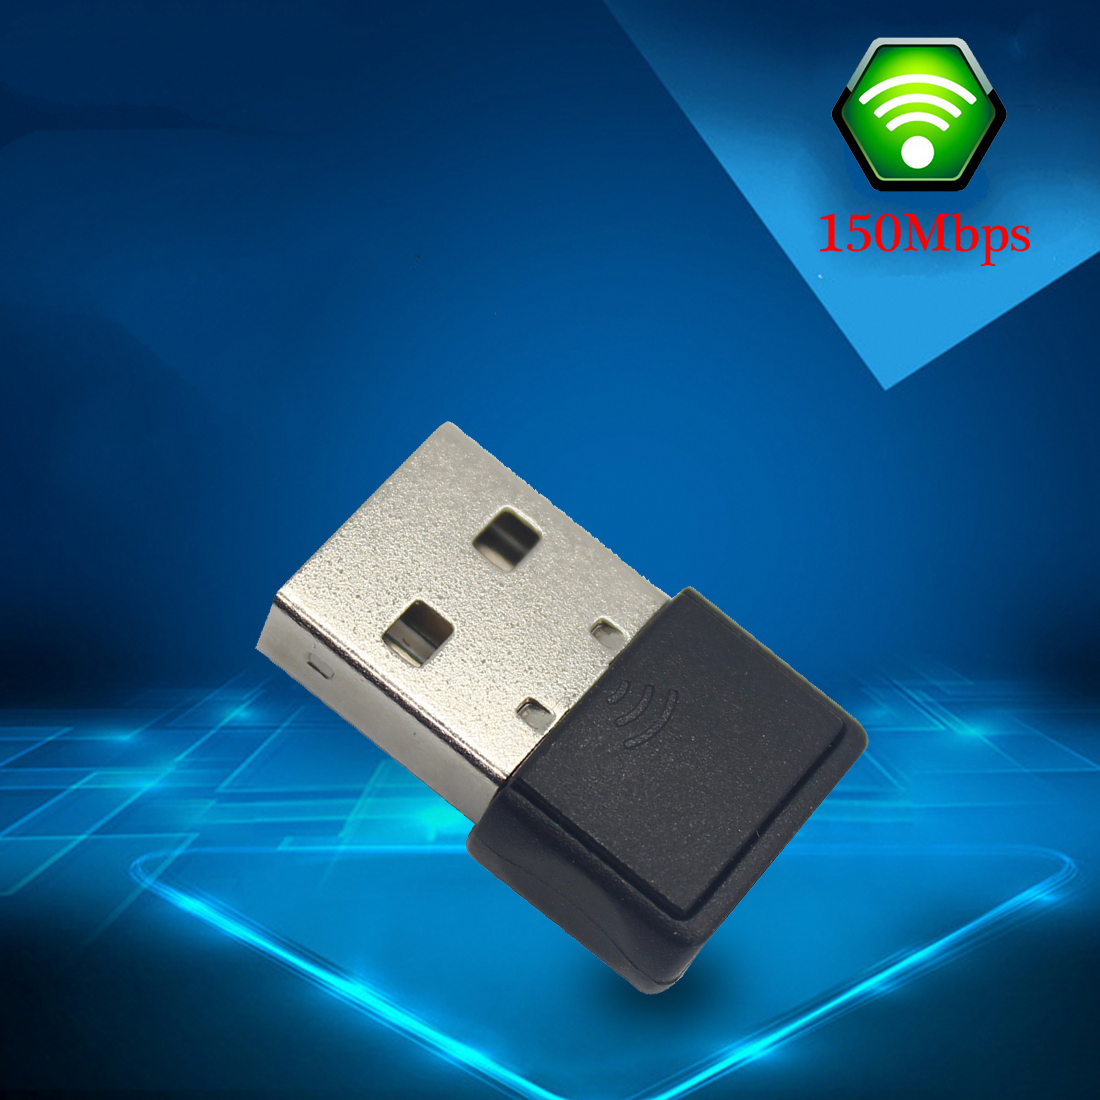 NOYOKERE  WiFi Adapter USB Wireless Dongle Network LAN Card Receiver Mini 802.11N Mobile Laptop